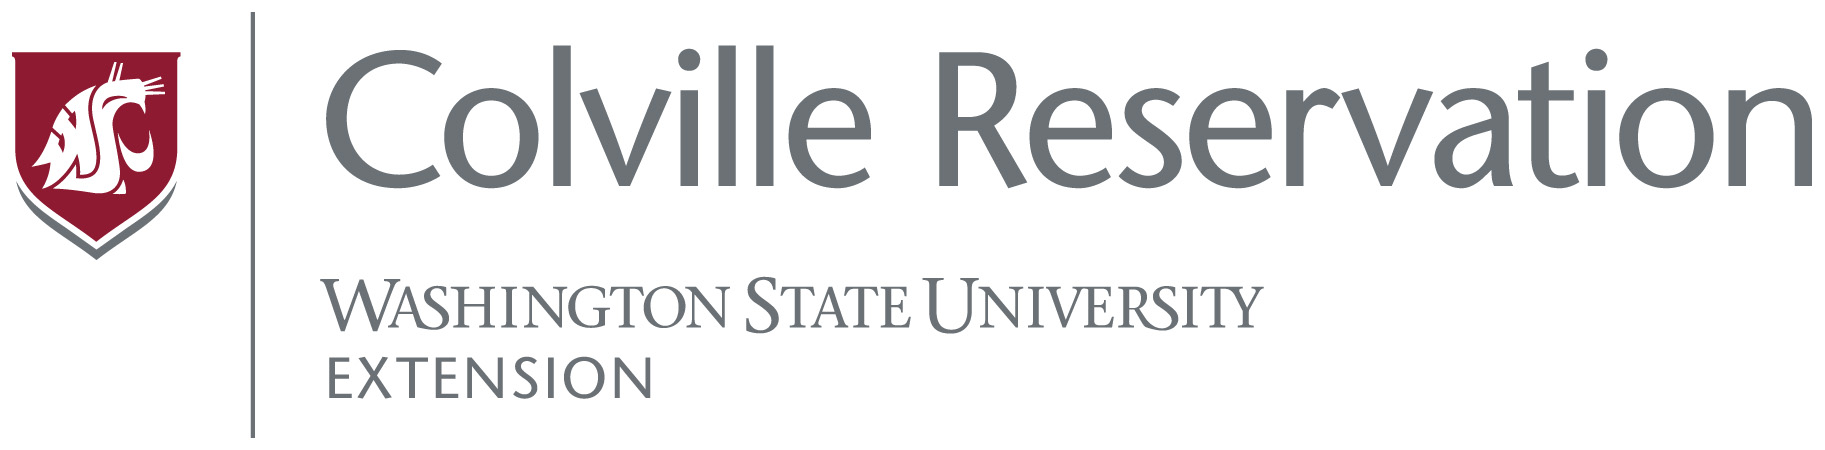 Colville Reservation Extension Logo